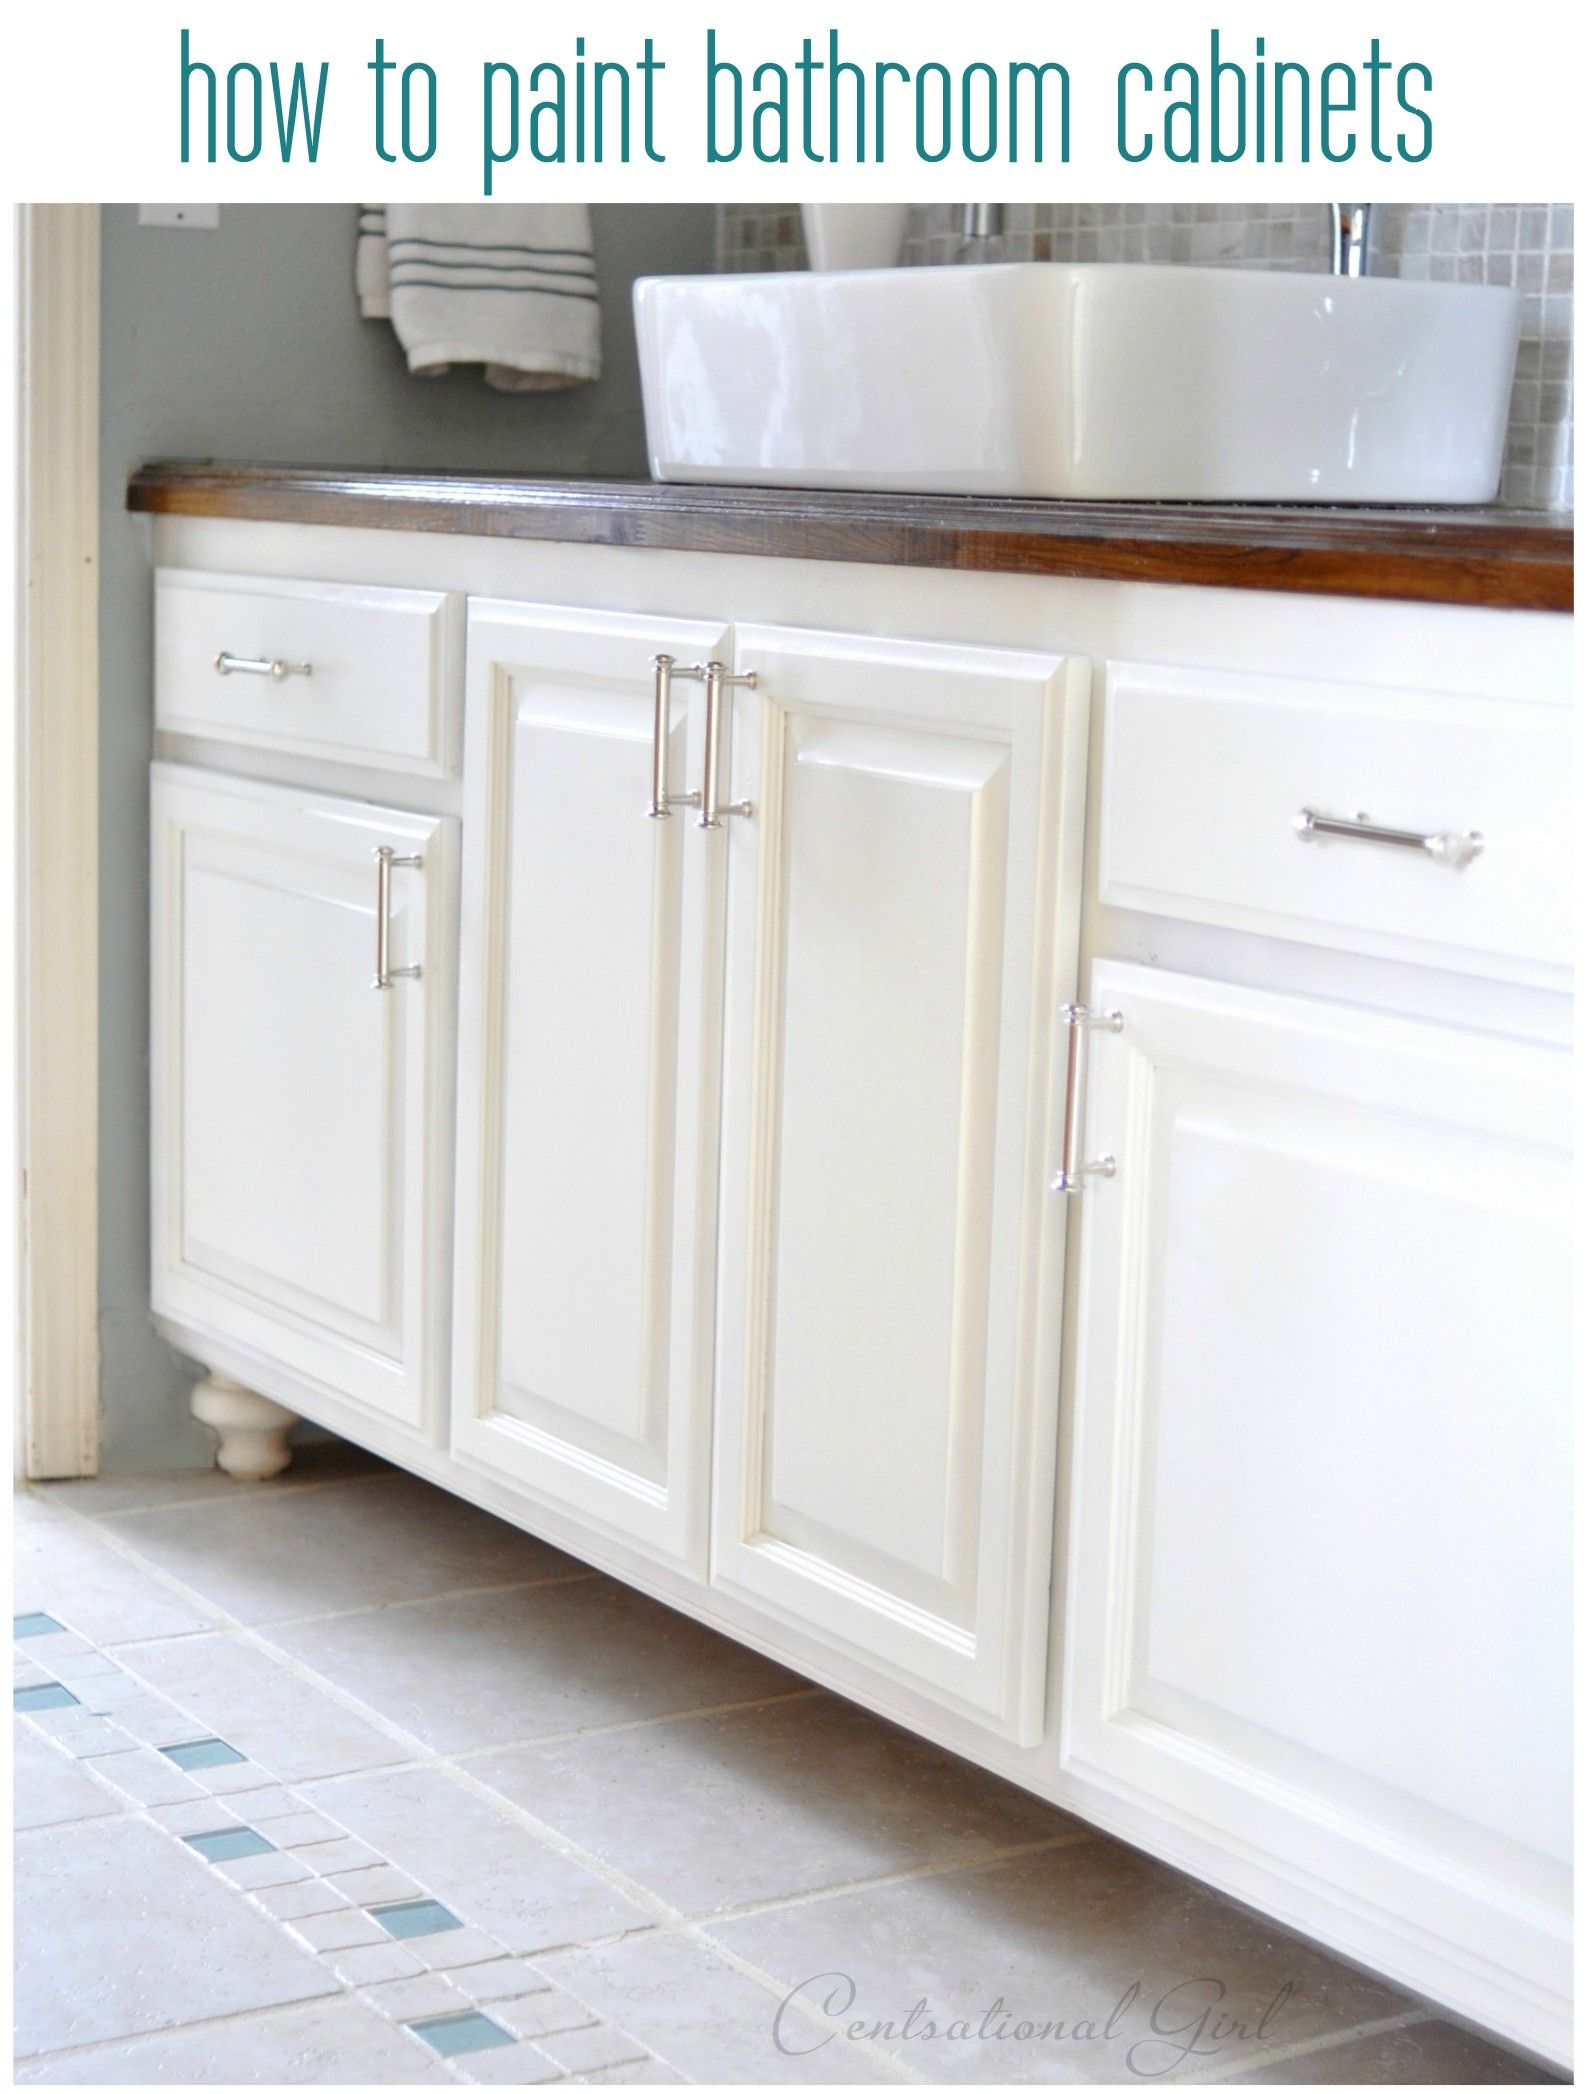 How To Paint Kitchen Cabinets In Mobile Home Painted Bathroom Cabinets Good To Know Painting